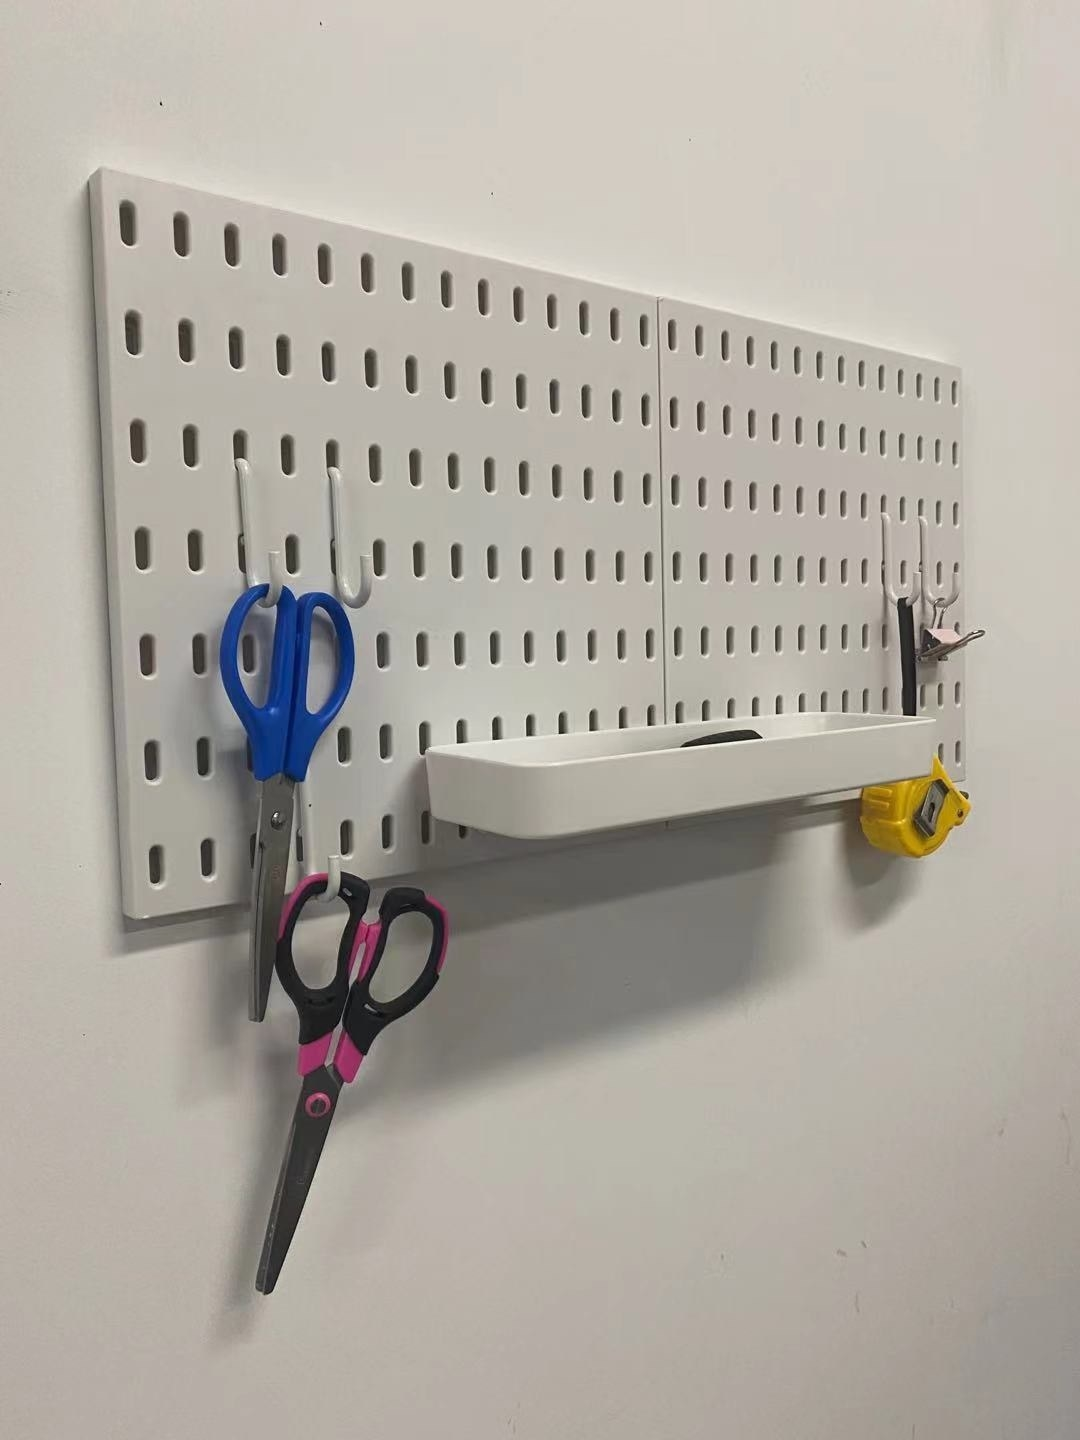 The pegboard with a shelf and several hooks holding items